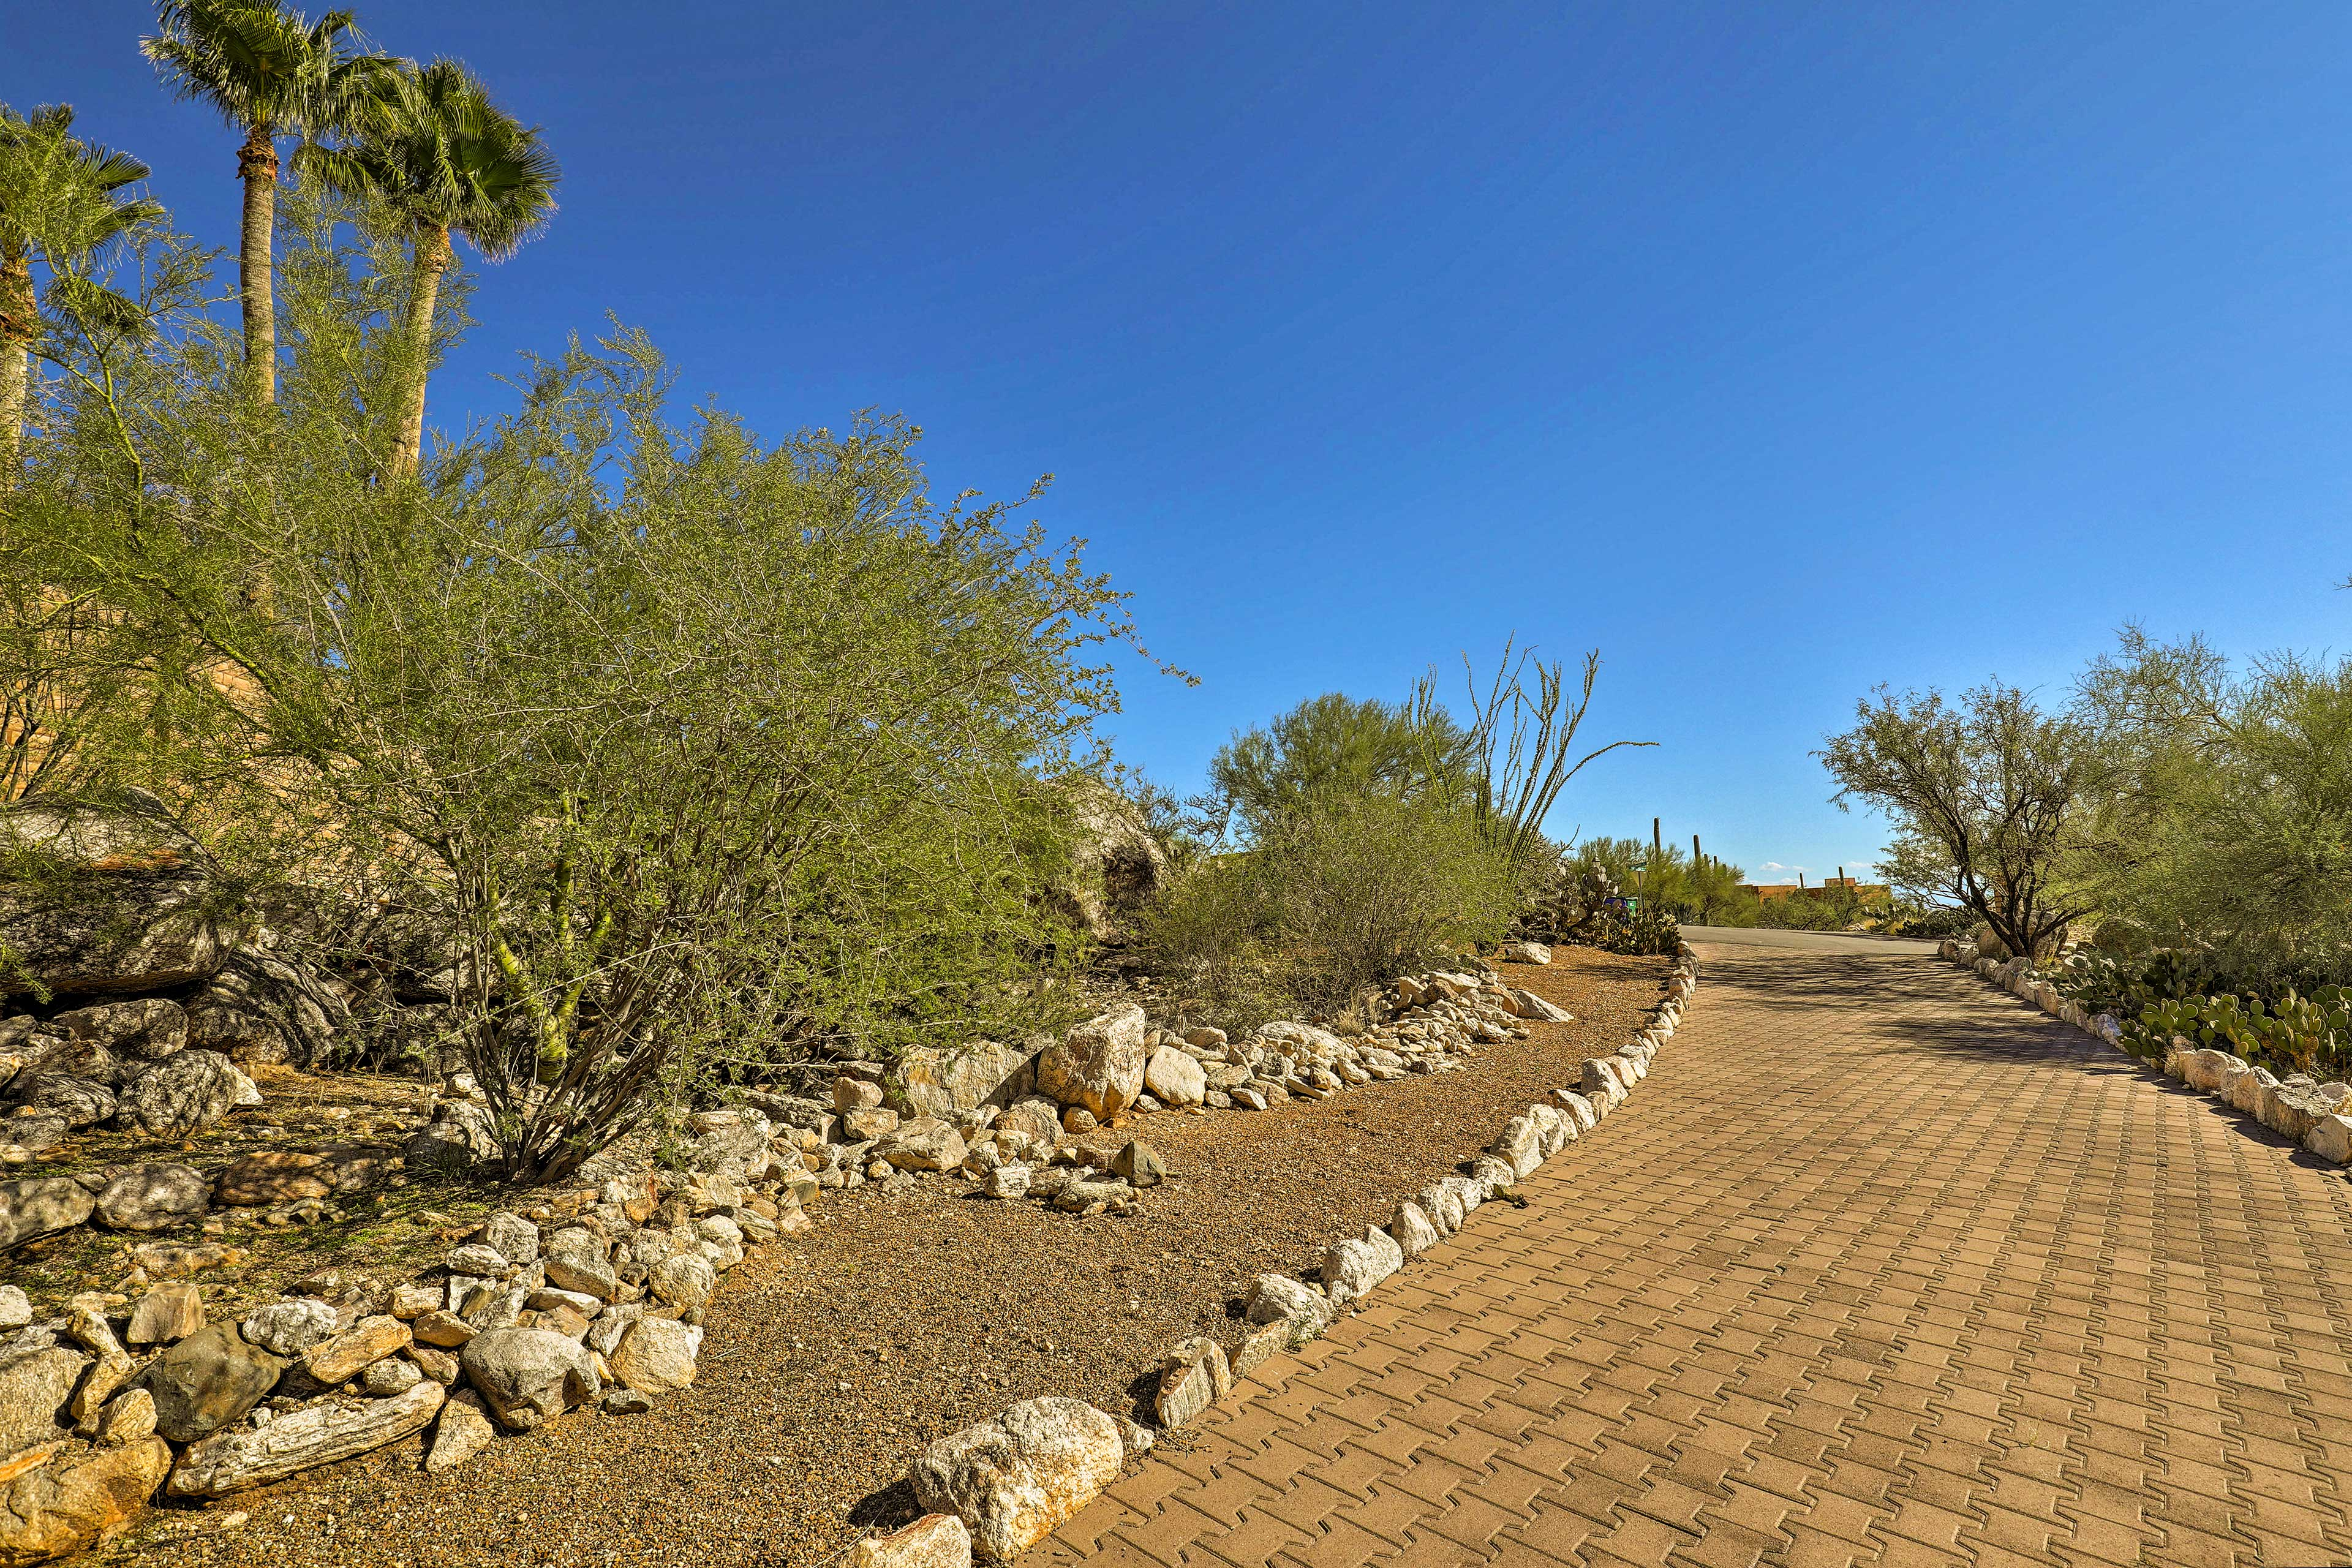 Follow the driveway to arrive at your desert oasis!